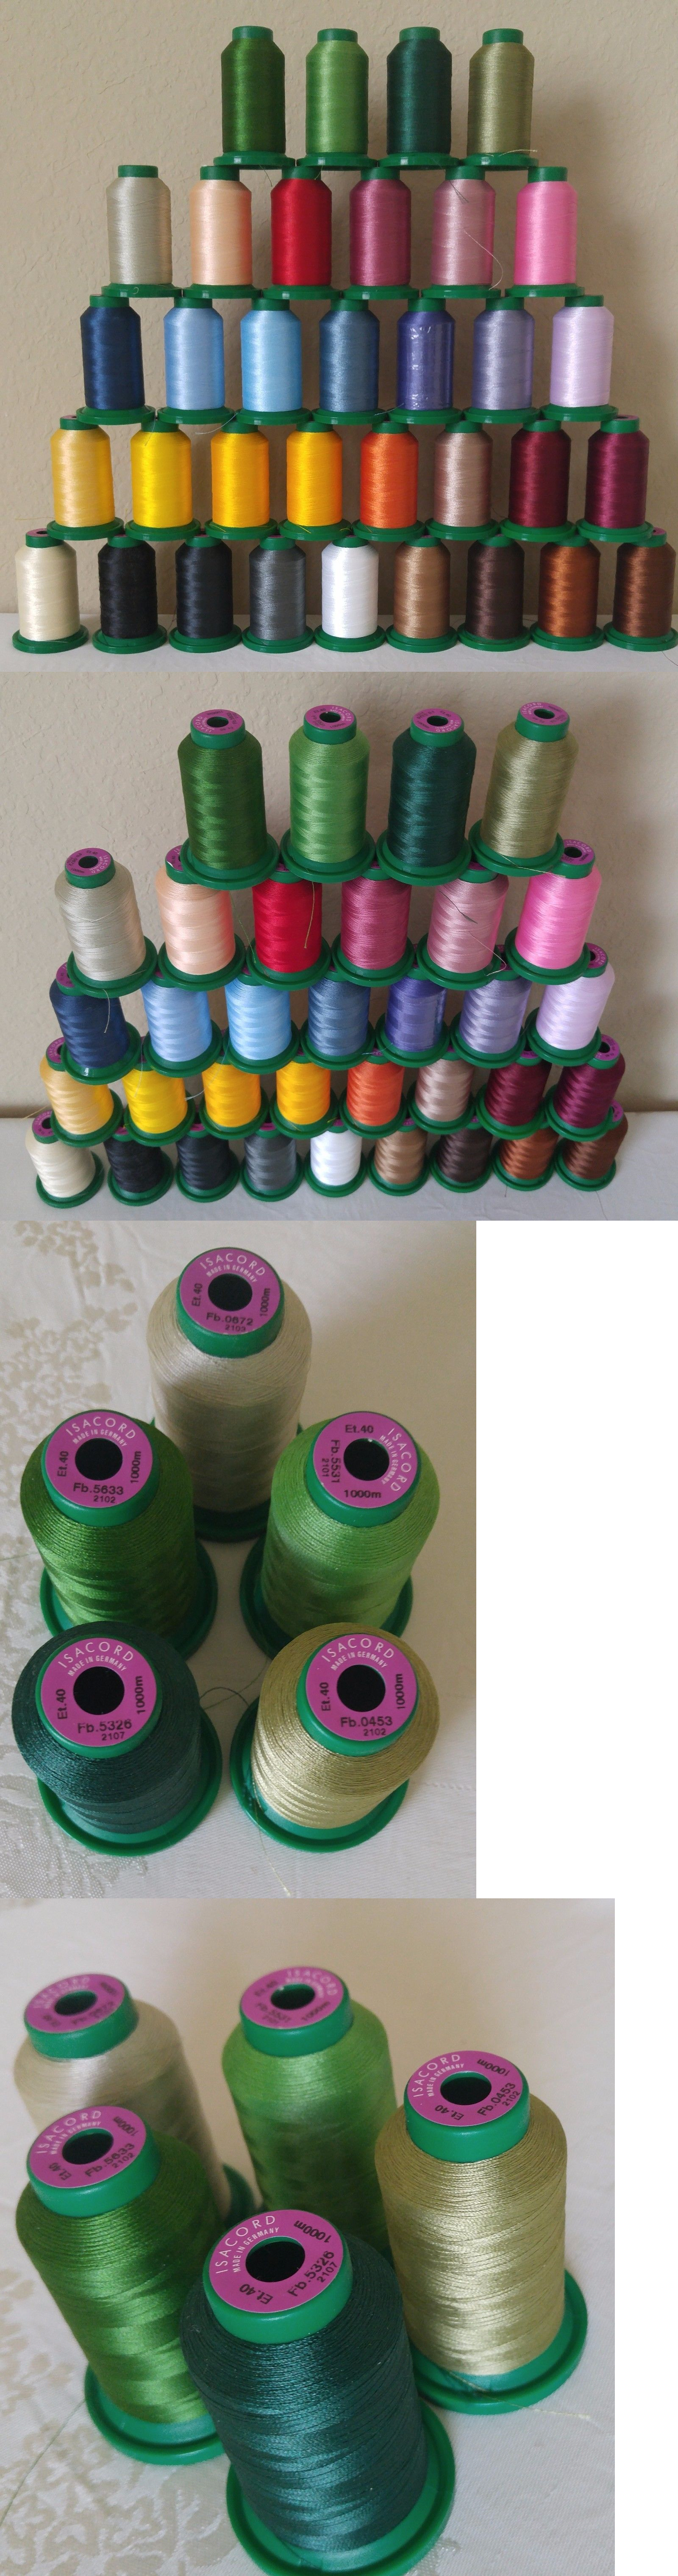 Machine Bobbins And Thread 83920 Lot Of 34 Cones Spools Isacord